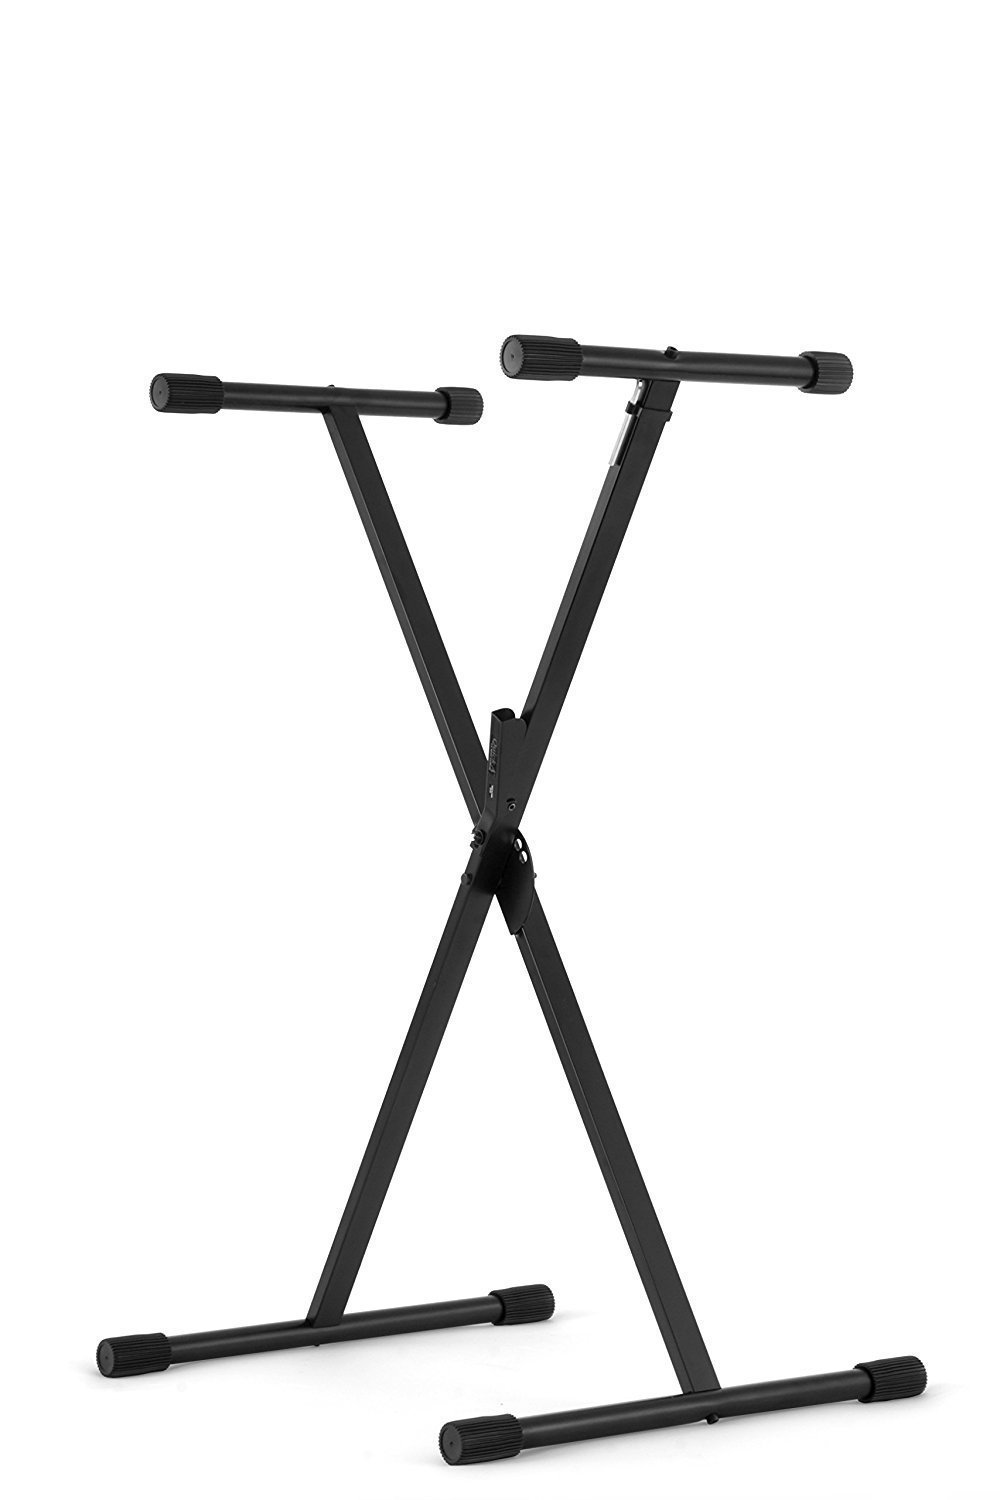 Nomad NKS-K119 Single X Keyboard Stand